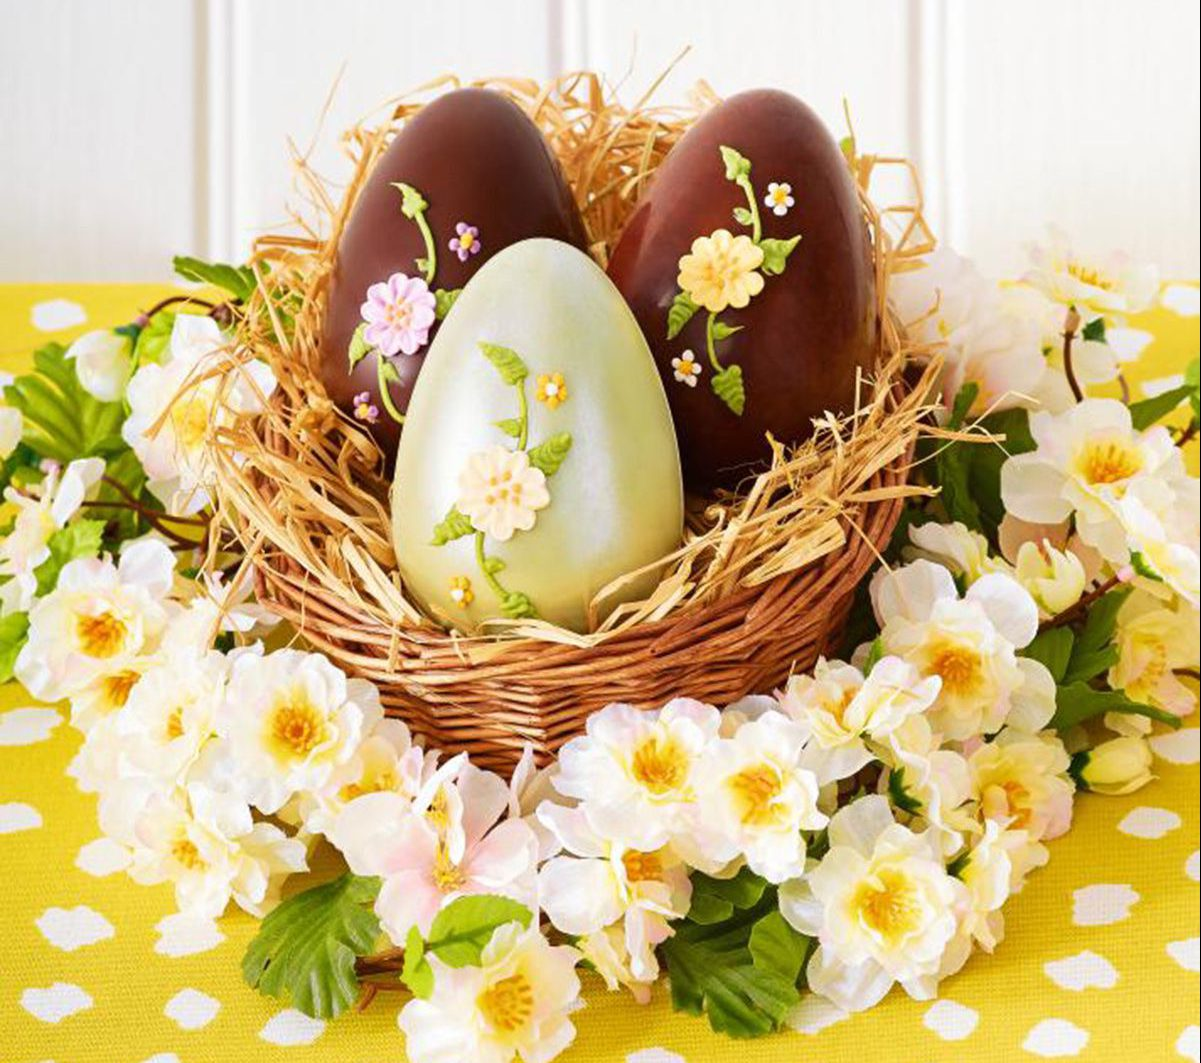 Easter story: What happened on Easter Sunday?